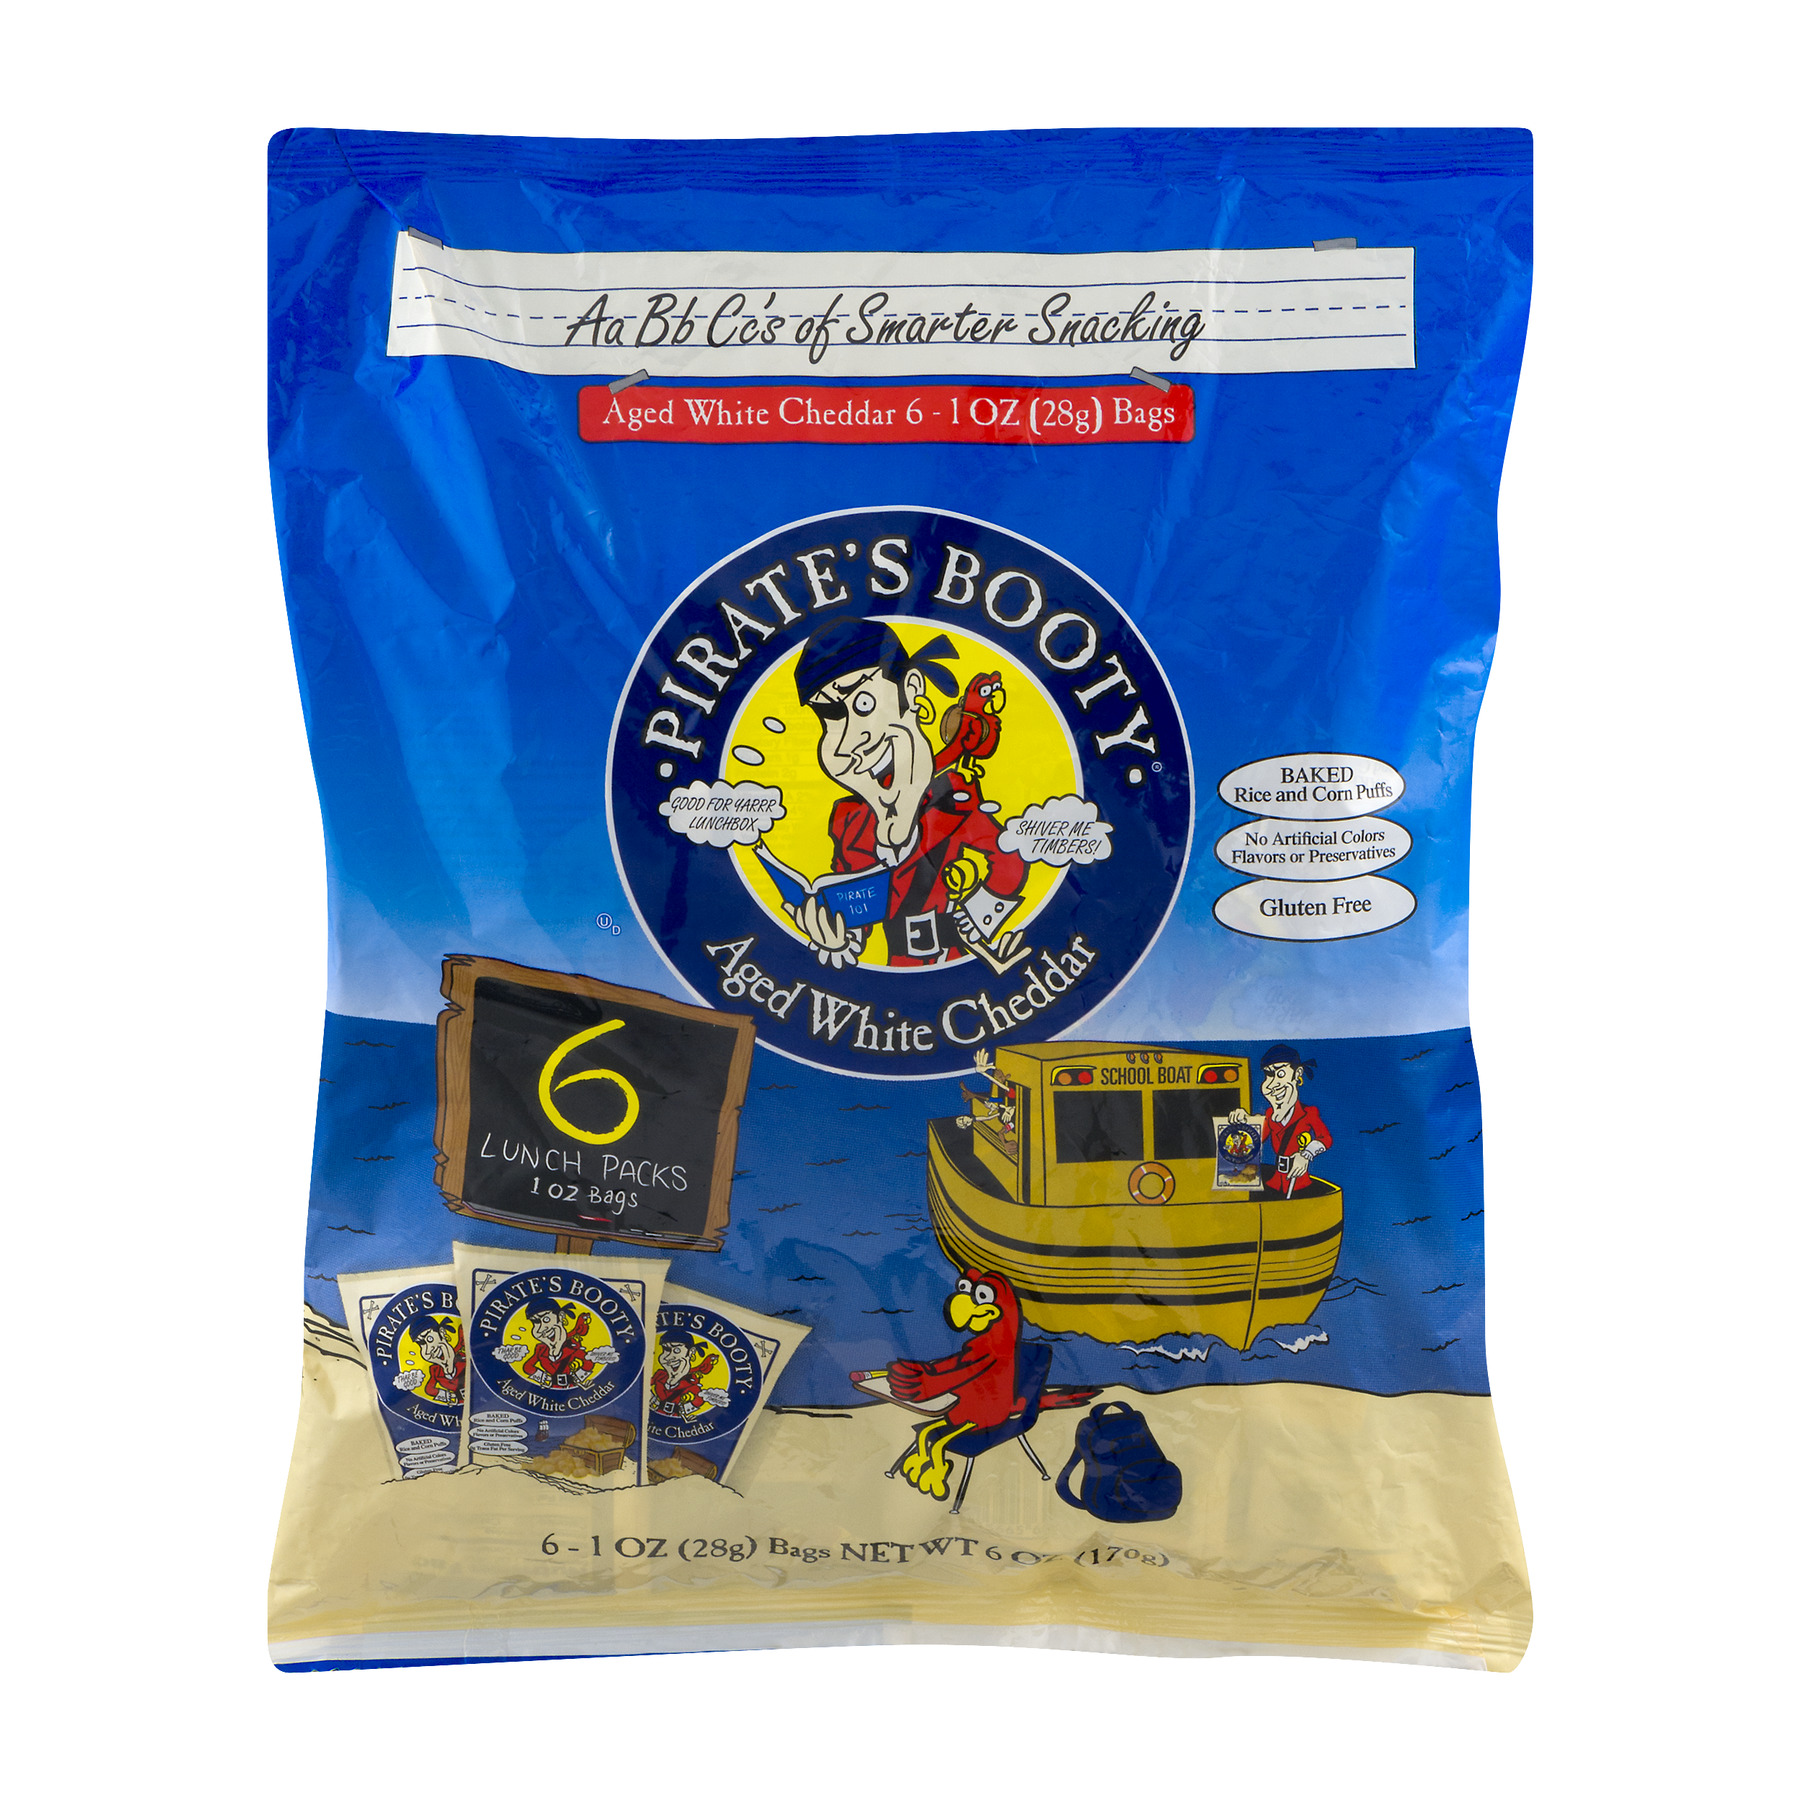 Pirate's Booty Aged White Cheddar Lunch Packs - 6 CT1.0 OZ